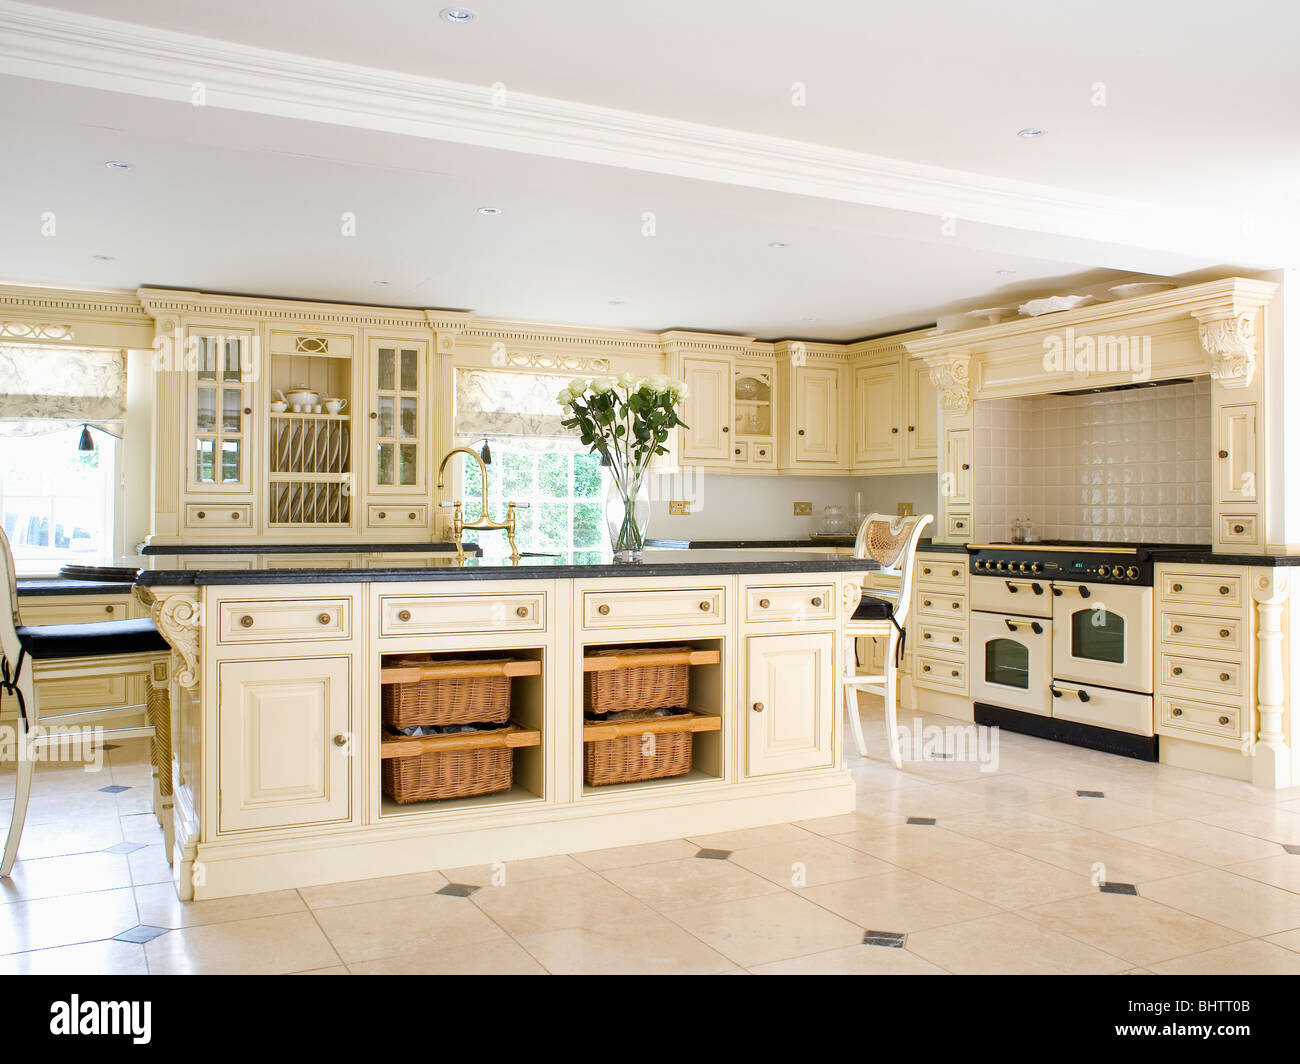 Stock Photo Storage Baskets On Shelves On Island Unit In Large Cream Country Kitchen